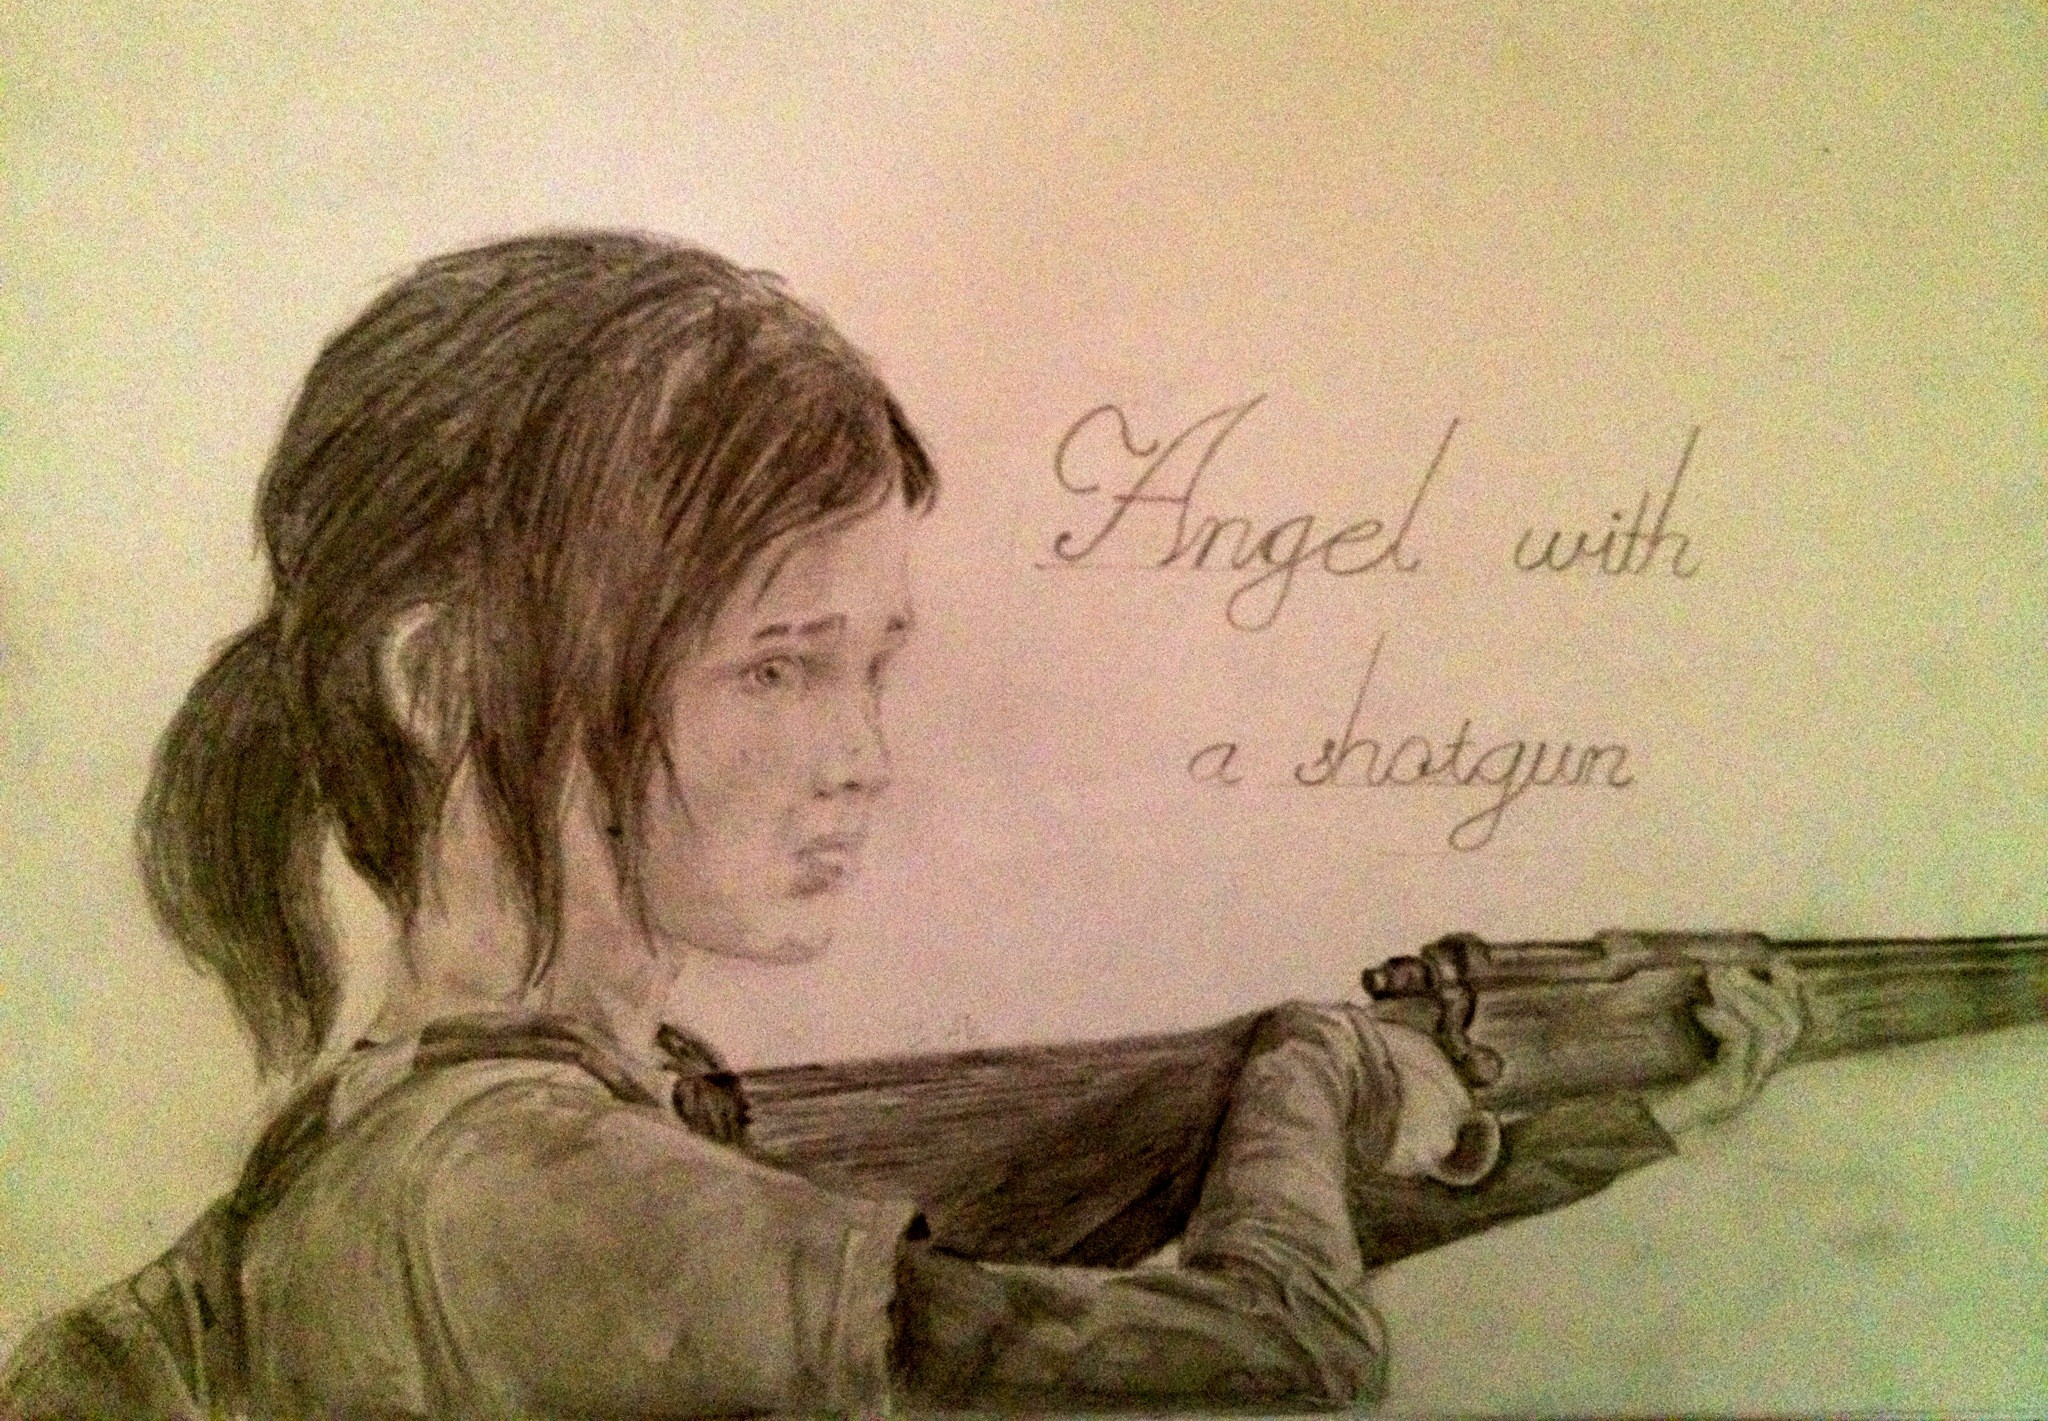 … The Last Of Us- Ellie, an angel with a shotgun by zakValkyrie